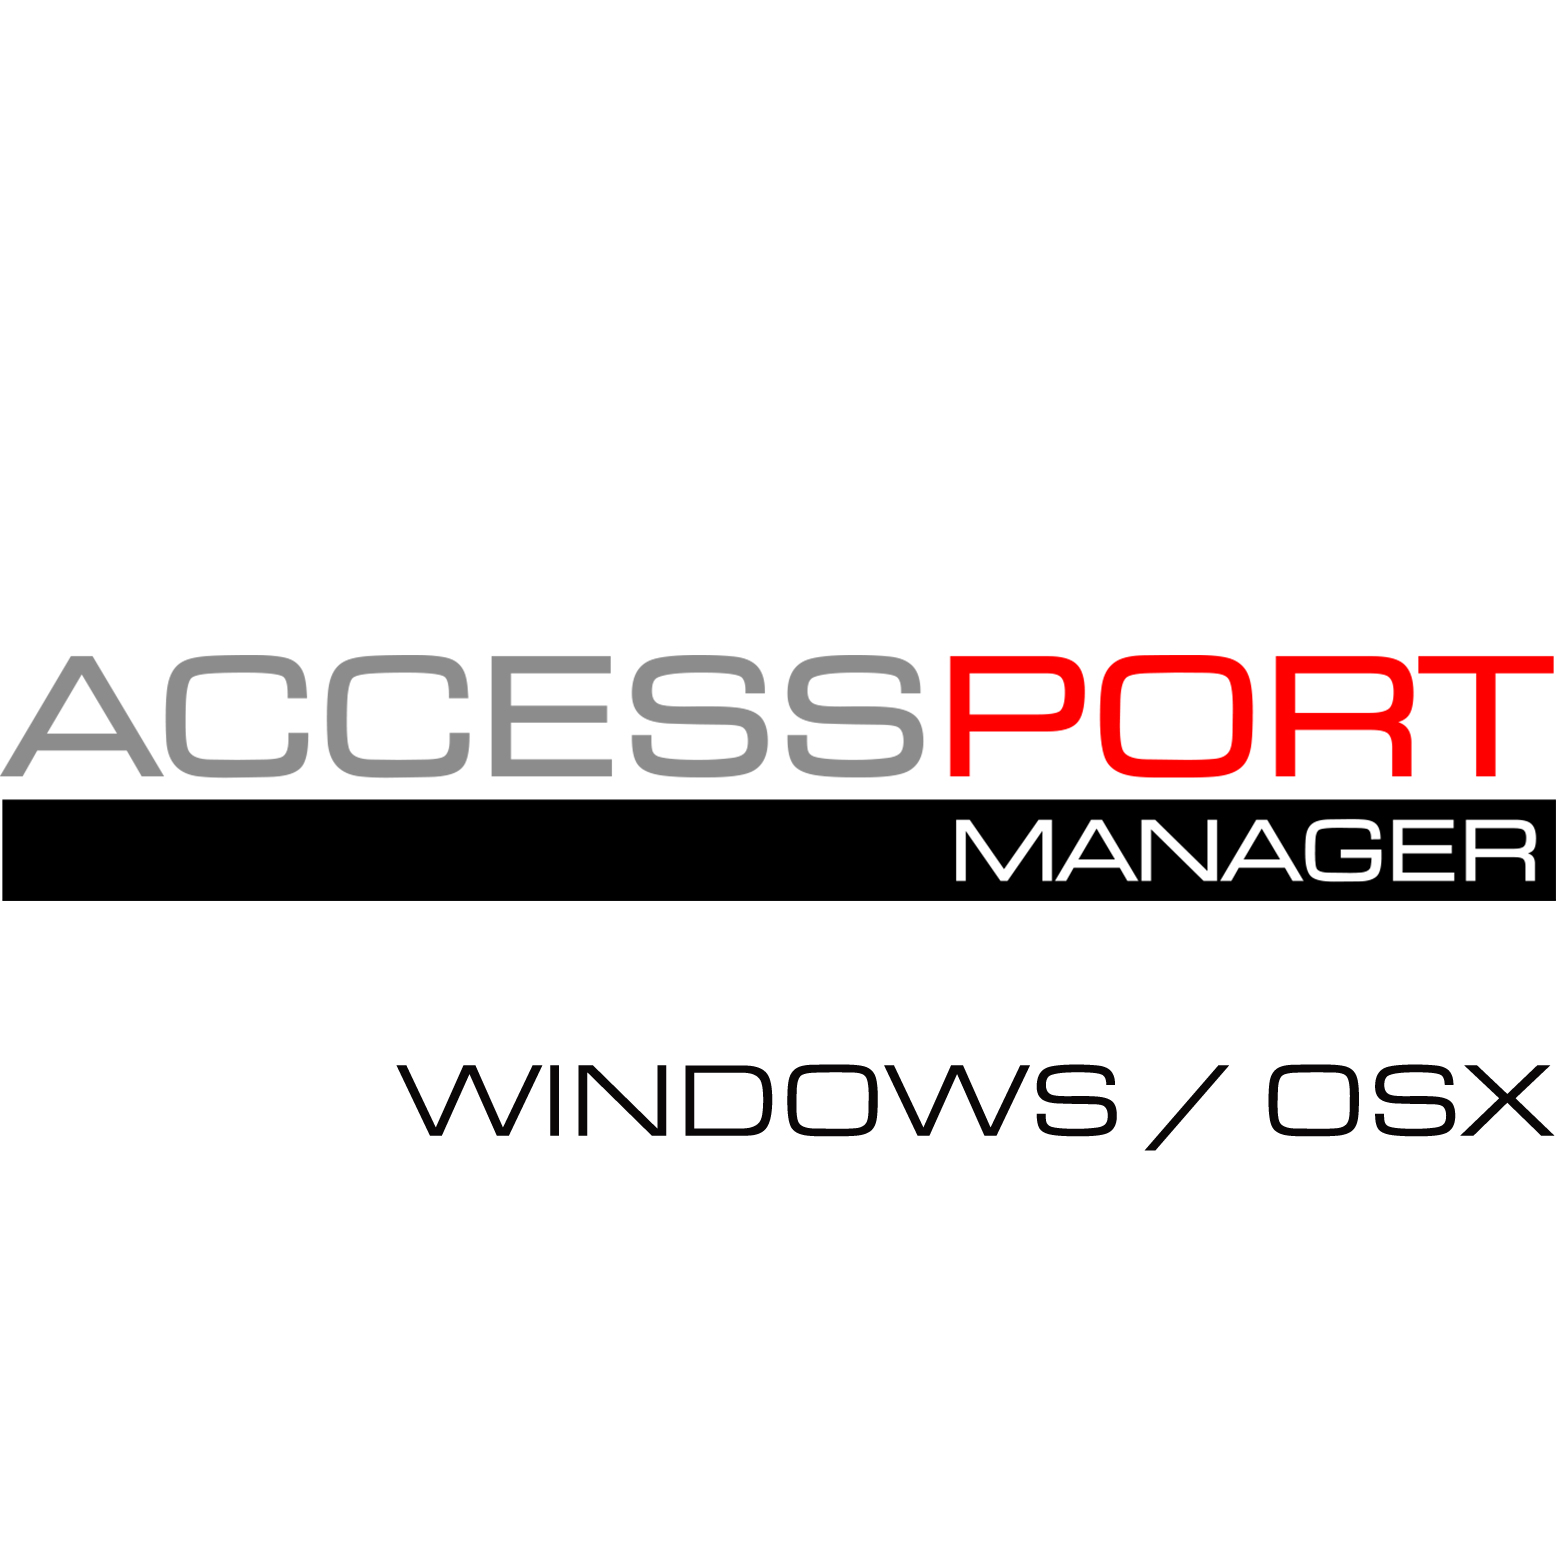 Accessport Manager